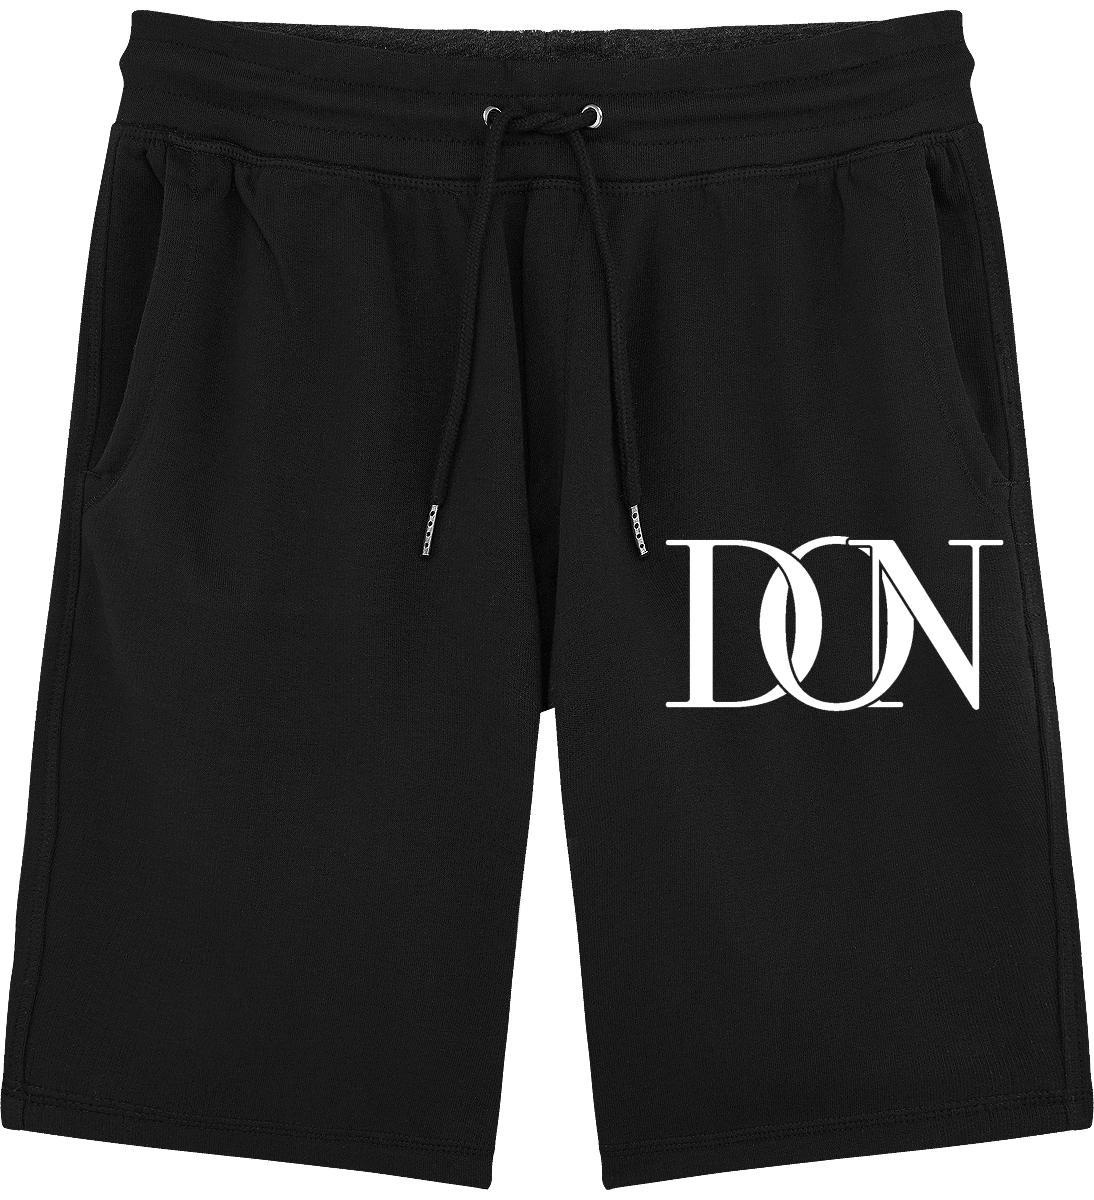 Mens Official Don Signature Light Jogging Shorts - Black / S - Homme>Vêtements De Sport